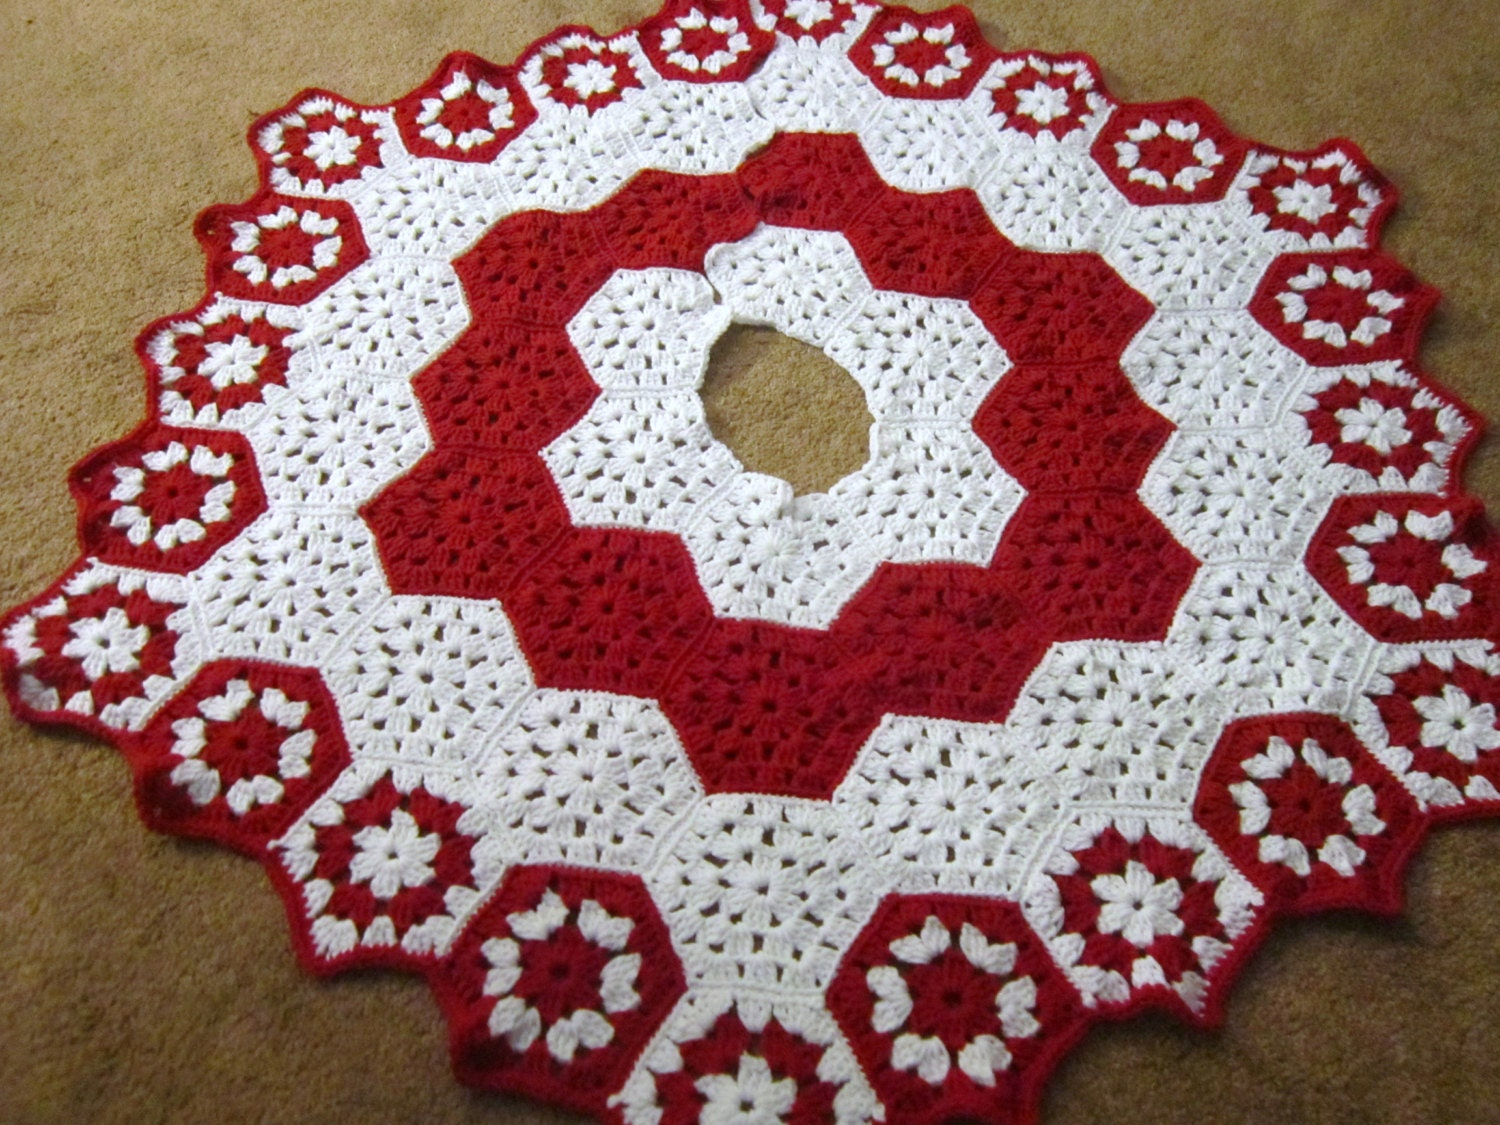 Crochet Xmas Tree Skirt : Christmas Tree Skirt Crocheted Granny by crochetedbycharlene